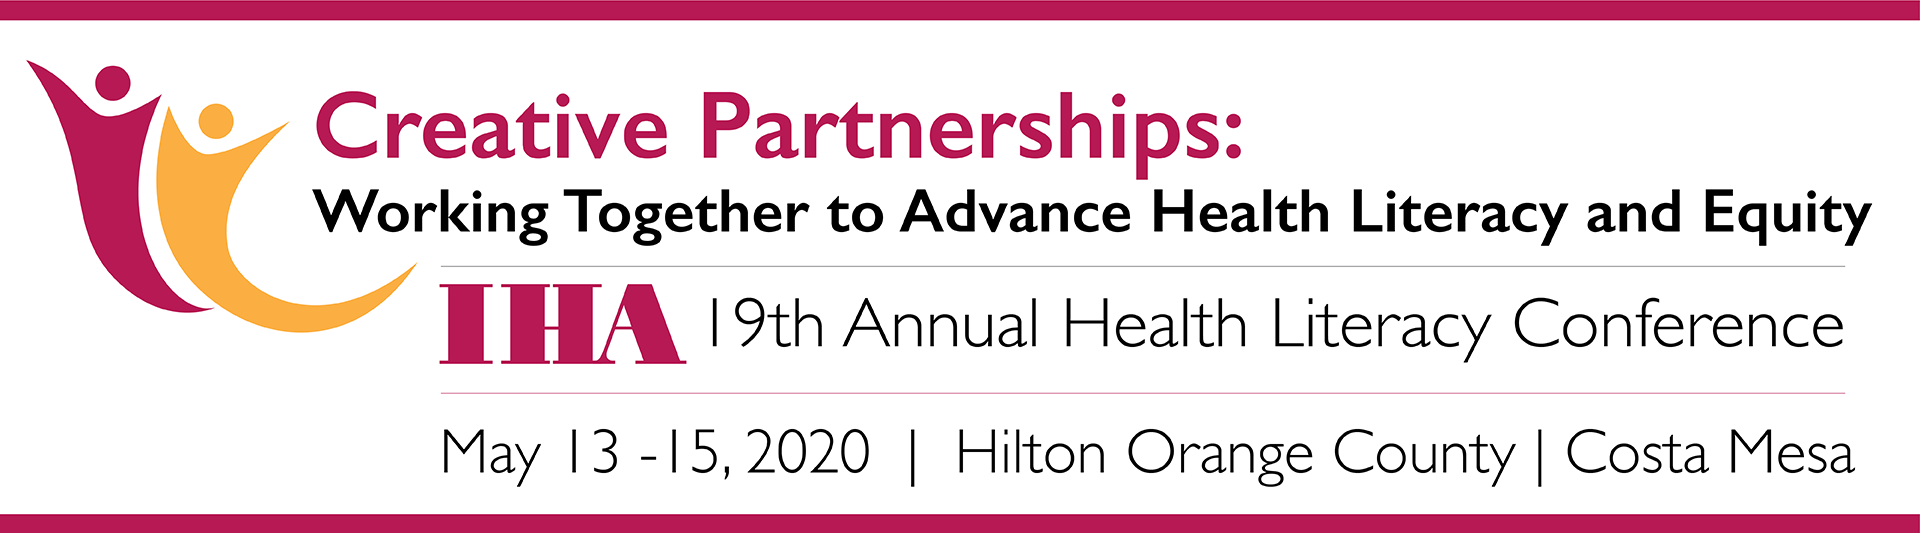 IHA's 19th Annual Health Literacy Conference